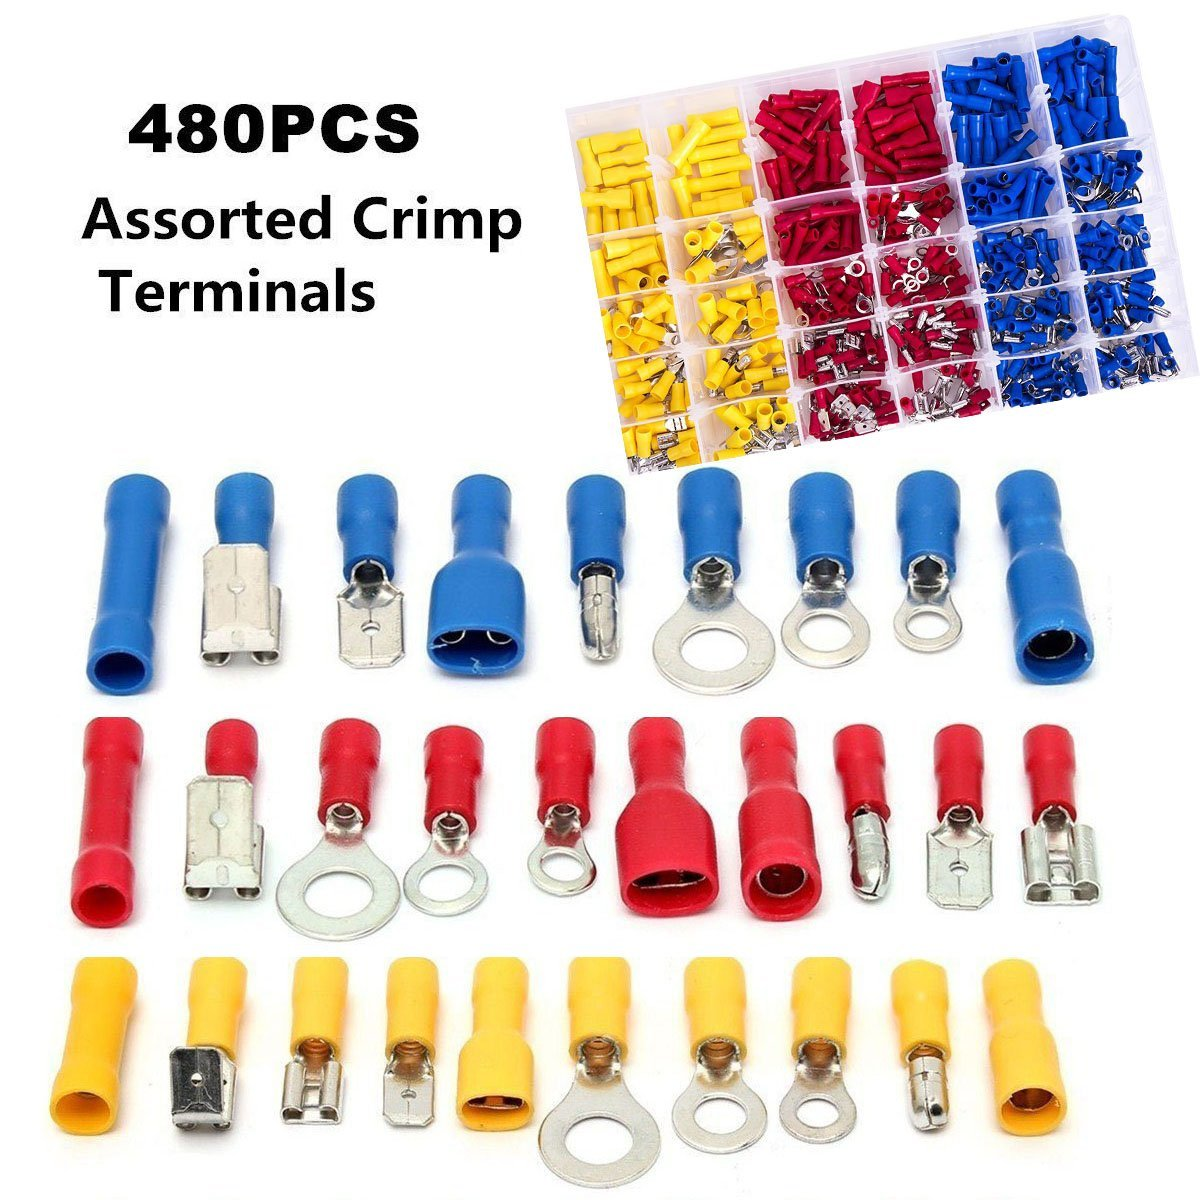 480 Pcs Mixed Assorted Crimp Terminal Connectors Set,Electrical Wire Connector Spade Terminal Assortment Kit with Storage Case